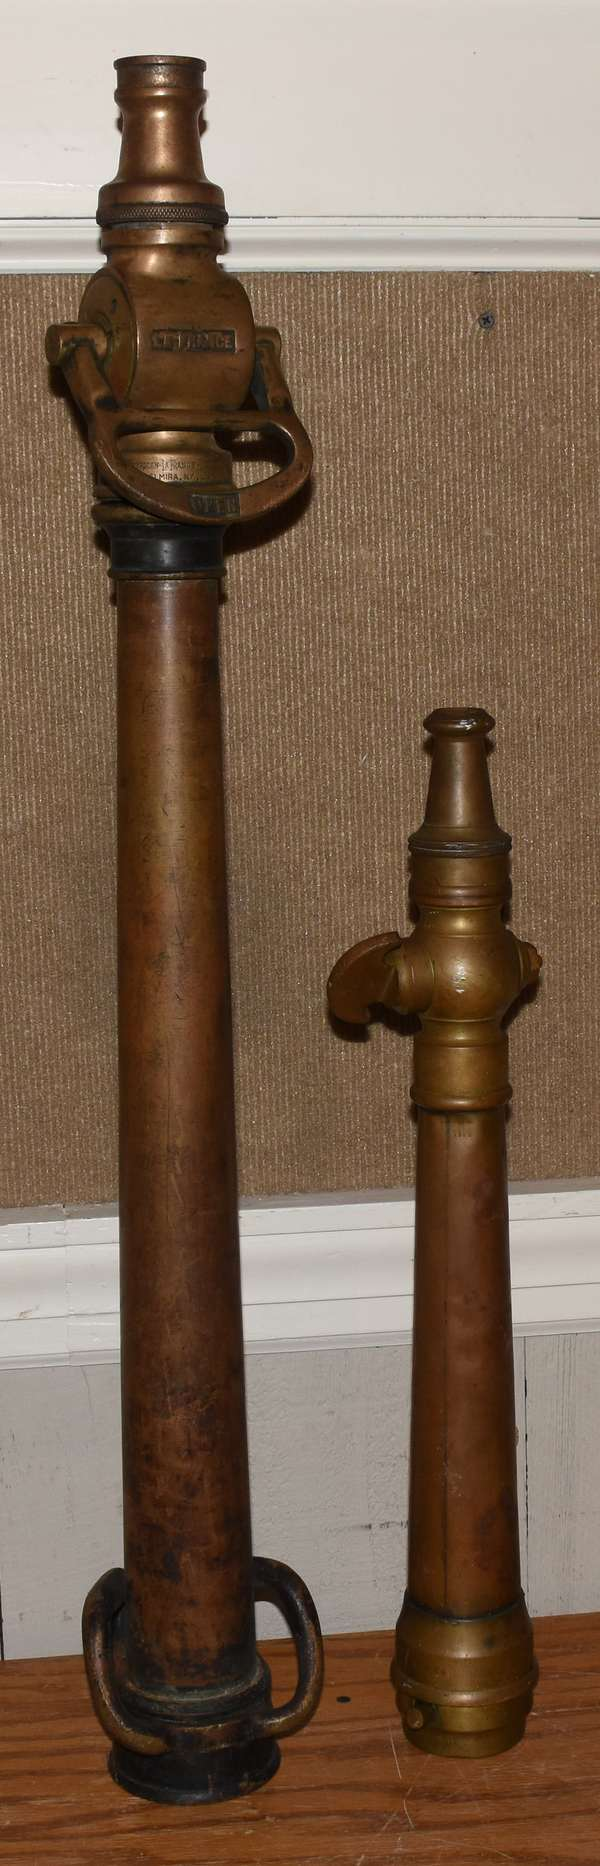 """Two brass nozzles, one """"American La France"""", 22""""L. and 34"""" (23-7)"""